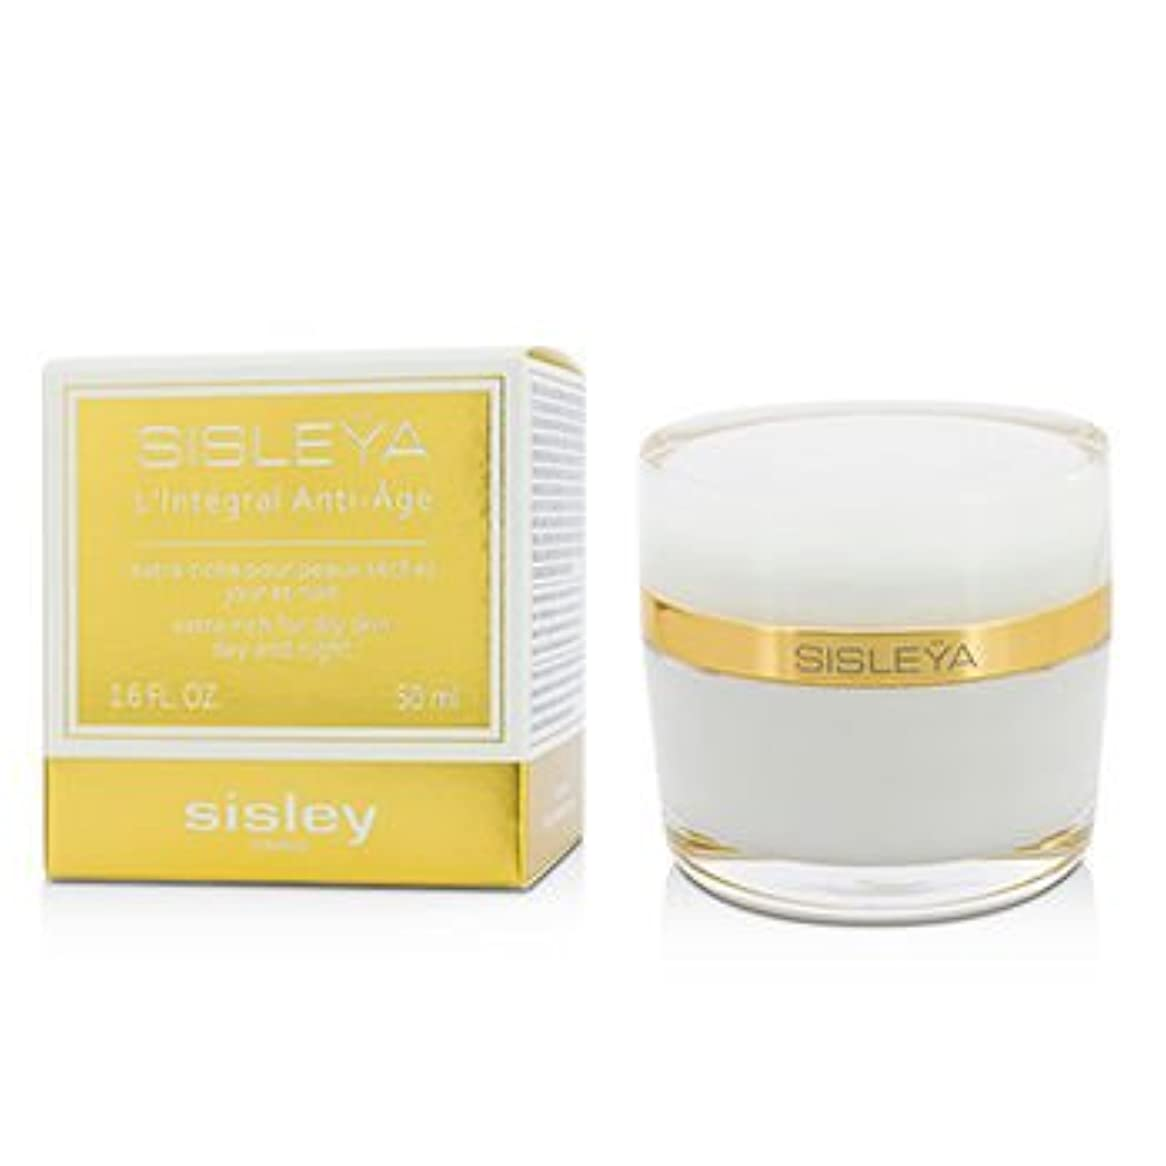 学んだ費やすマーティフィールディング[Sisley] Sisleya LIntegral Anti-Age Day And Night Cream - Extra Rich for Dry skin 50ml/1.6oz